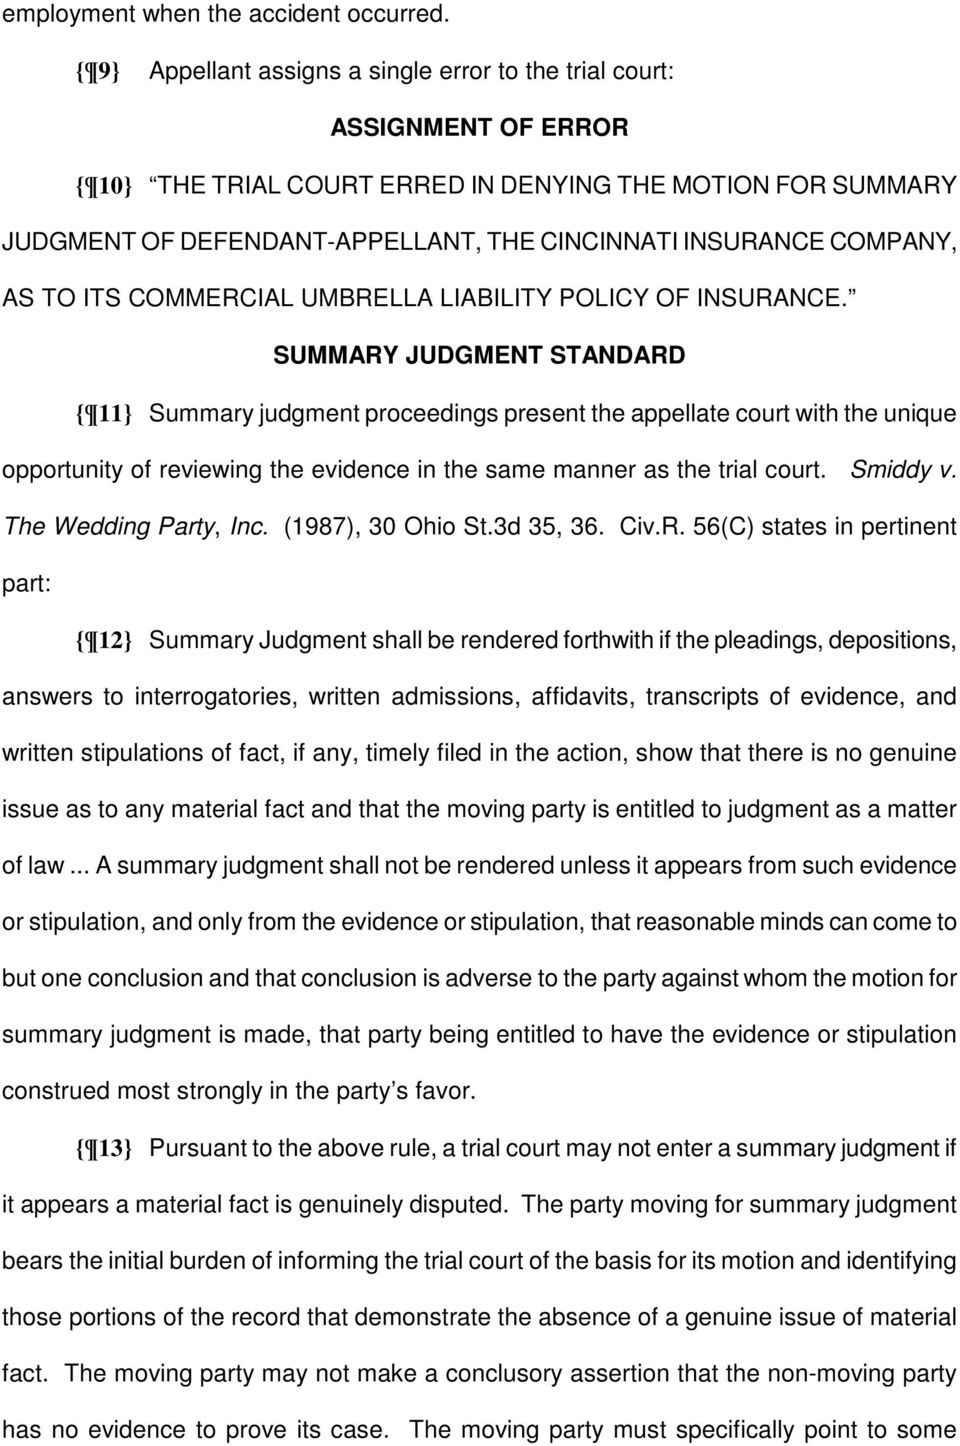 COMPANY, AS TO ITS COMMERCIAL UMBRELLA LIABILITY POLICY OF INSURANCE.